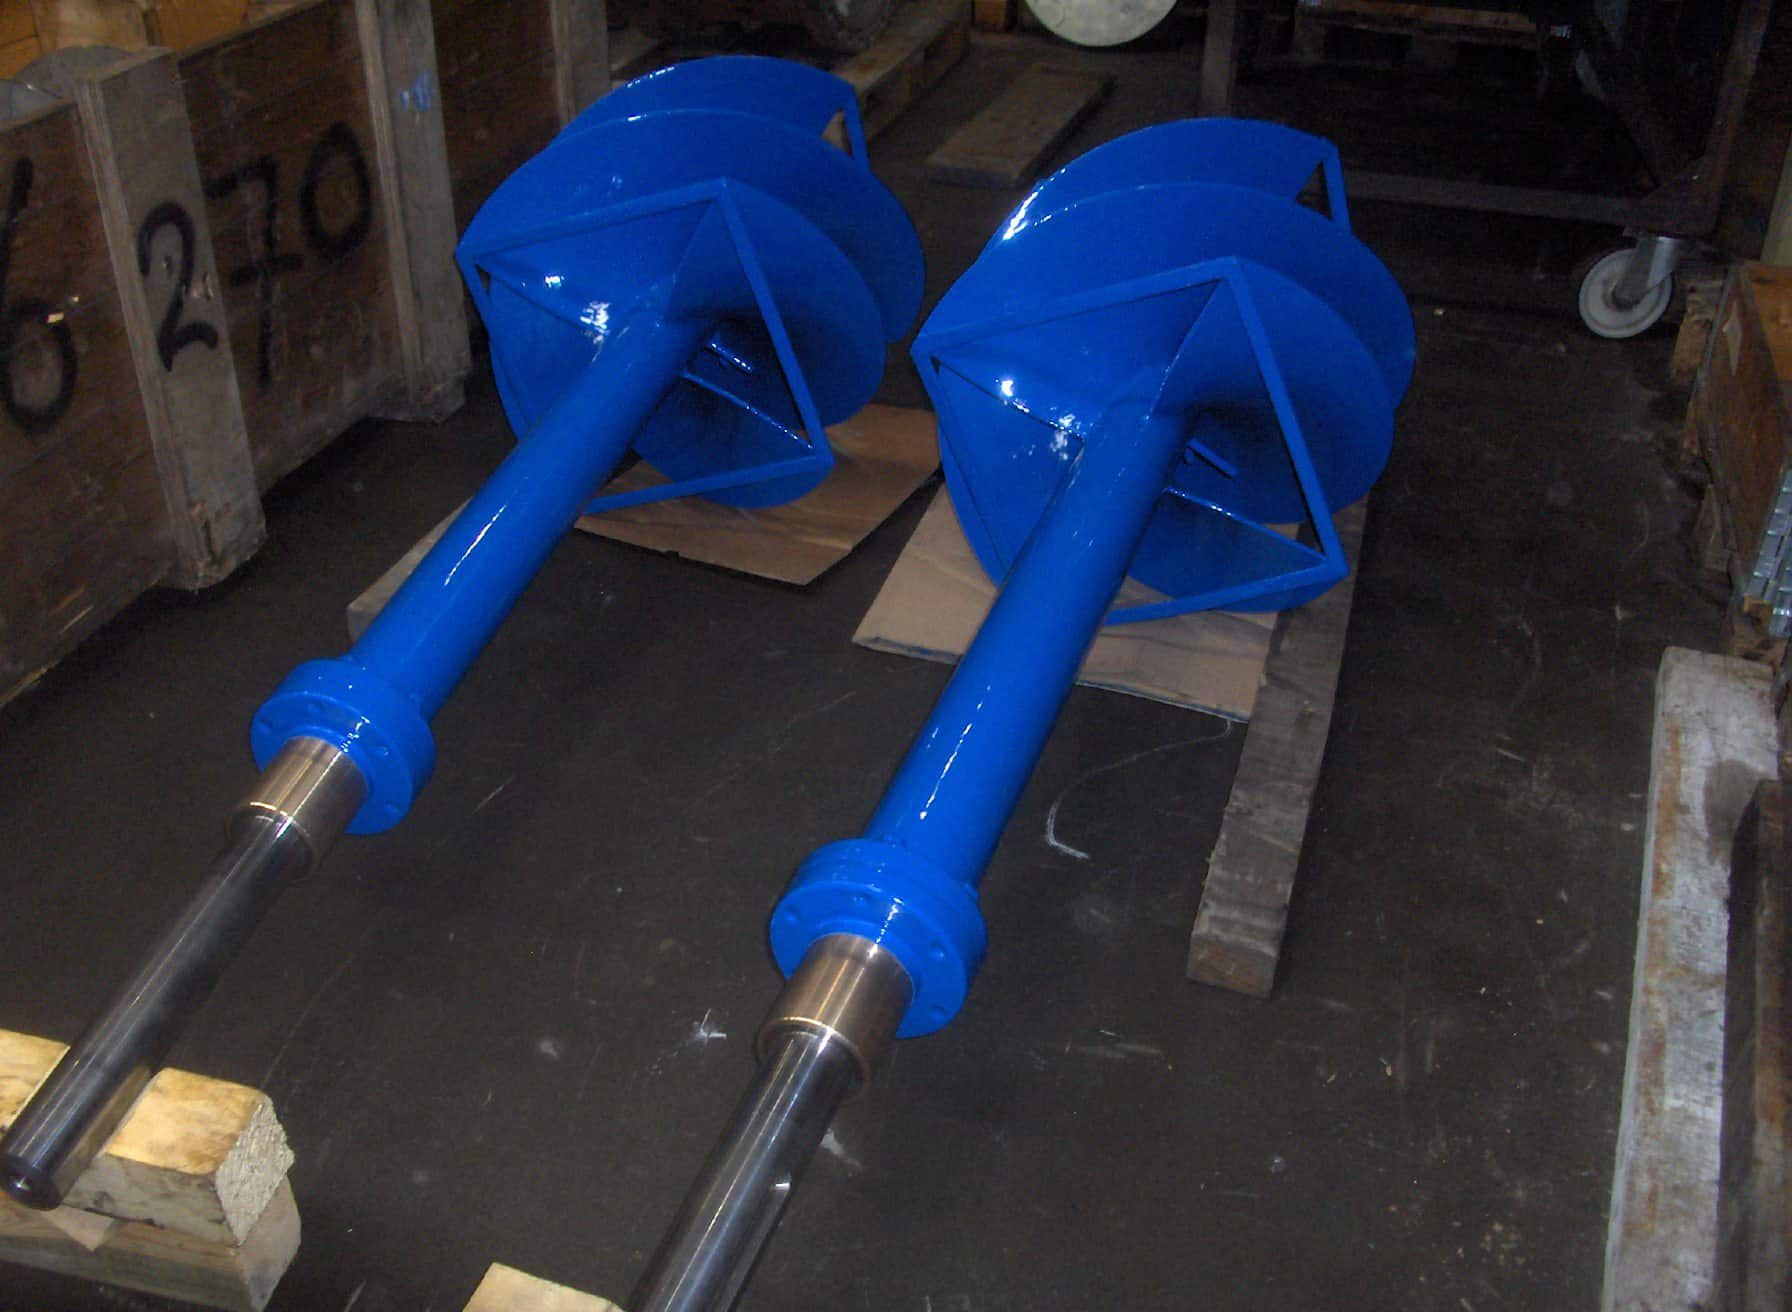 two gas/water mixers painted in blue